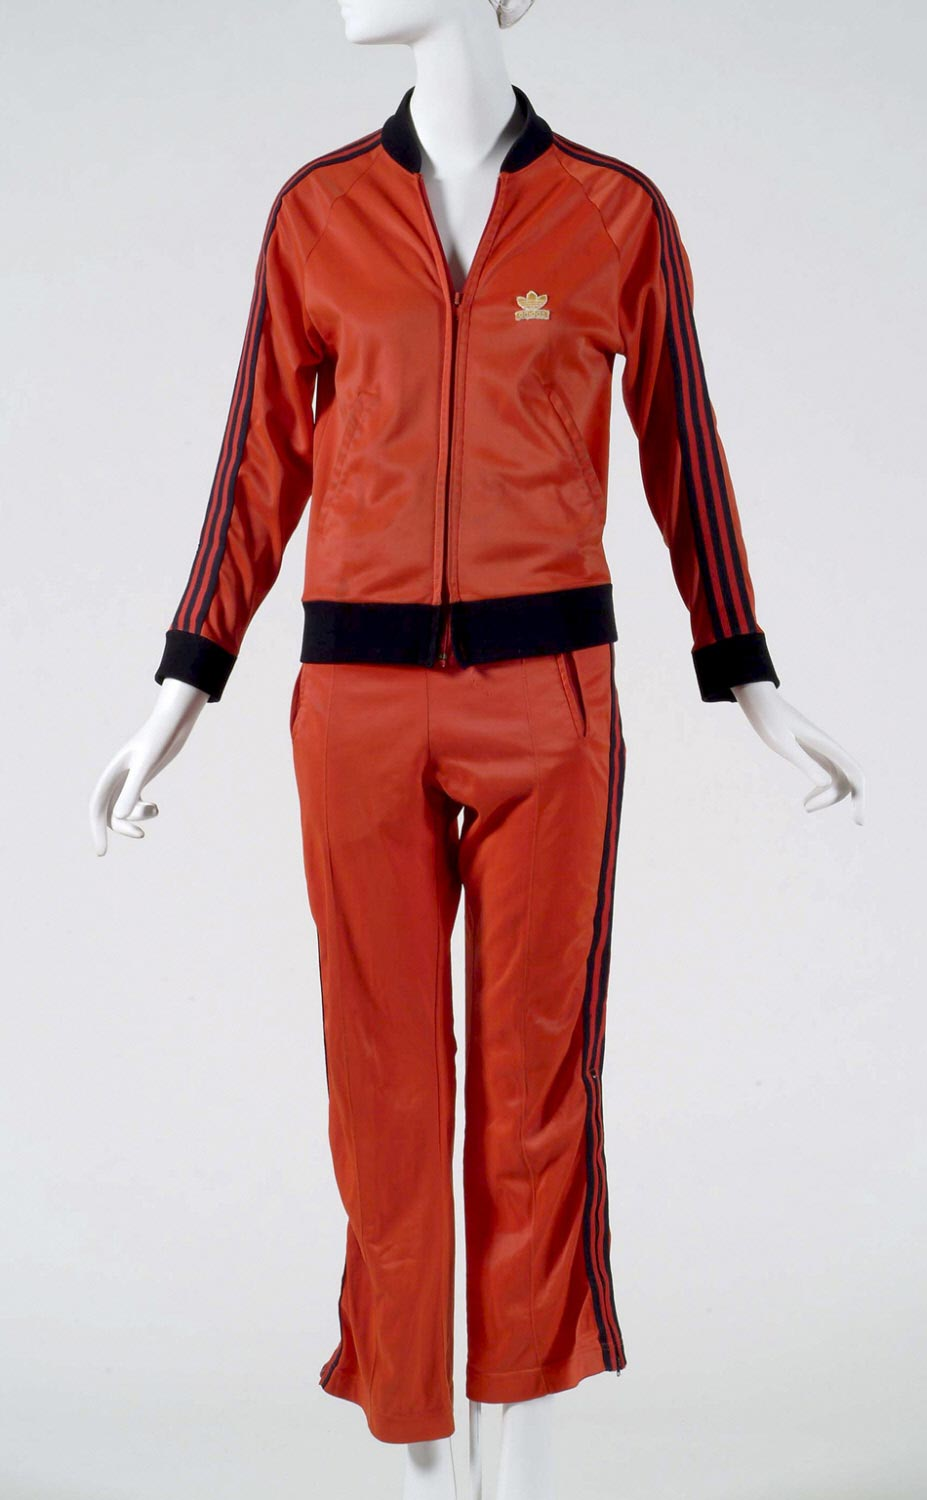 Woman's Tracksuit: Jacket and Pants